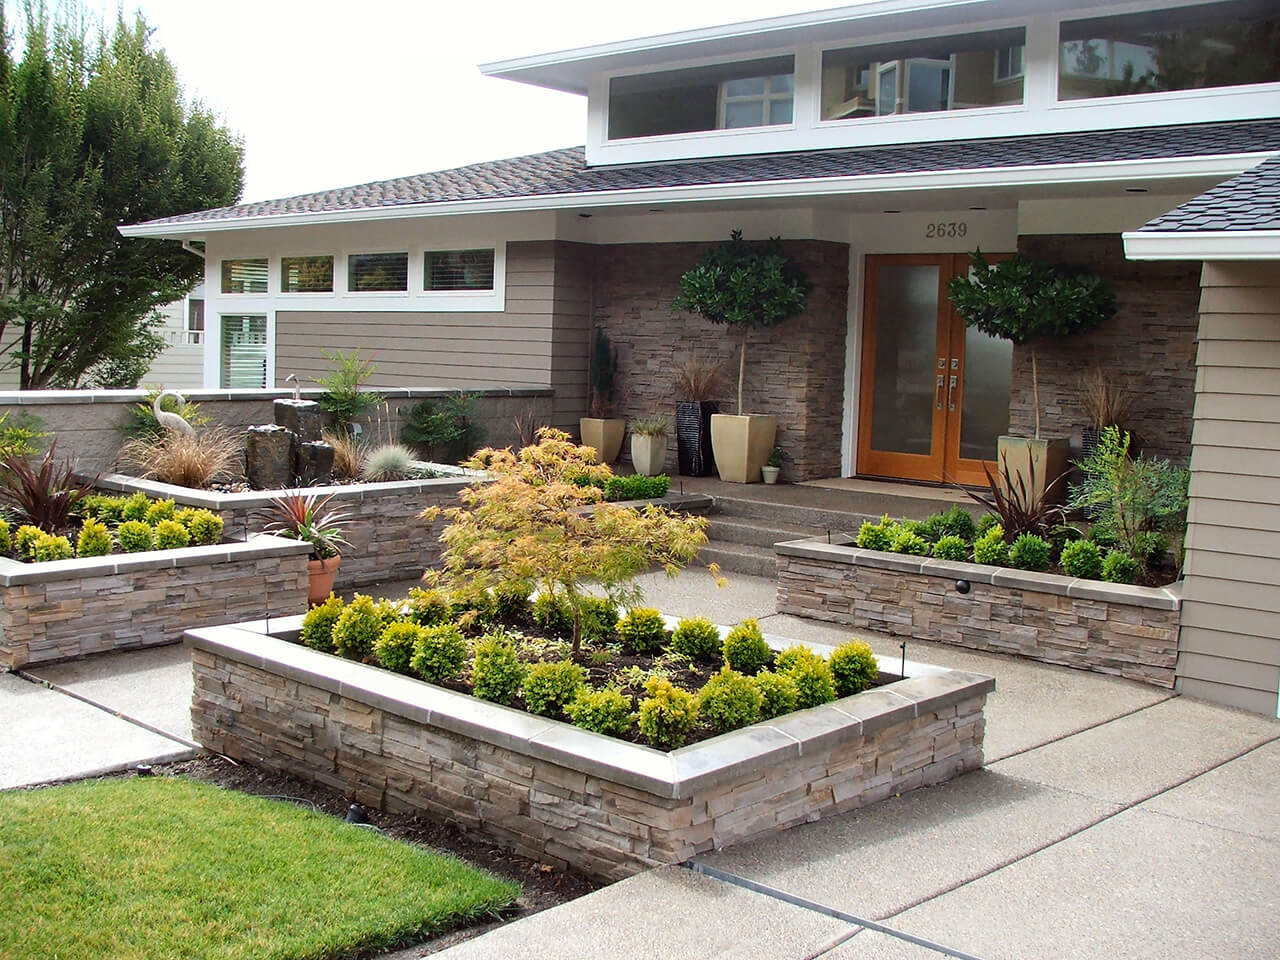 20 brilliant front garden landscaping ideas style motivation for Small front yard landscaping